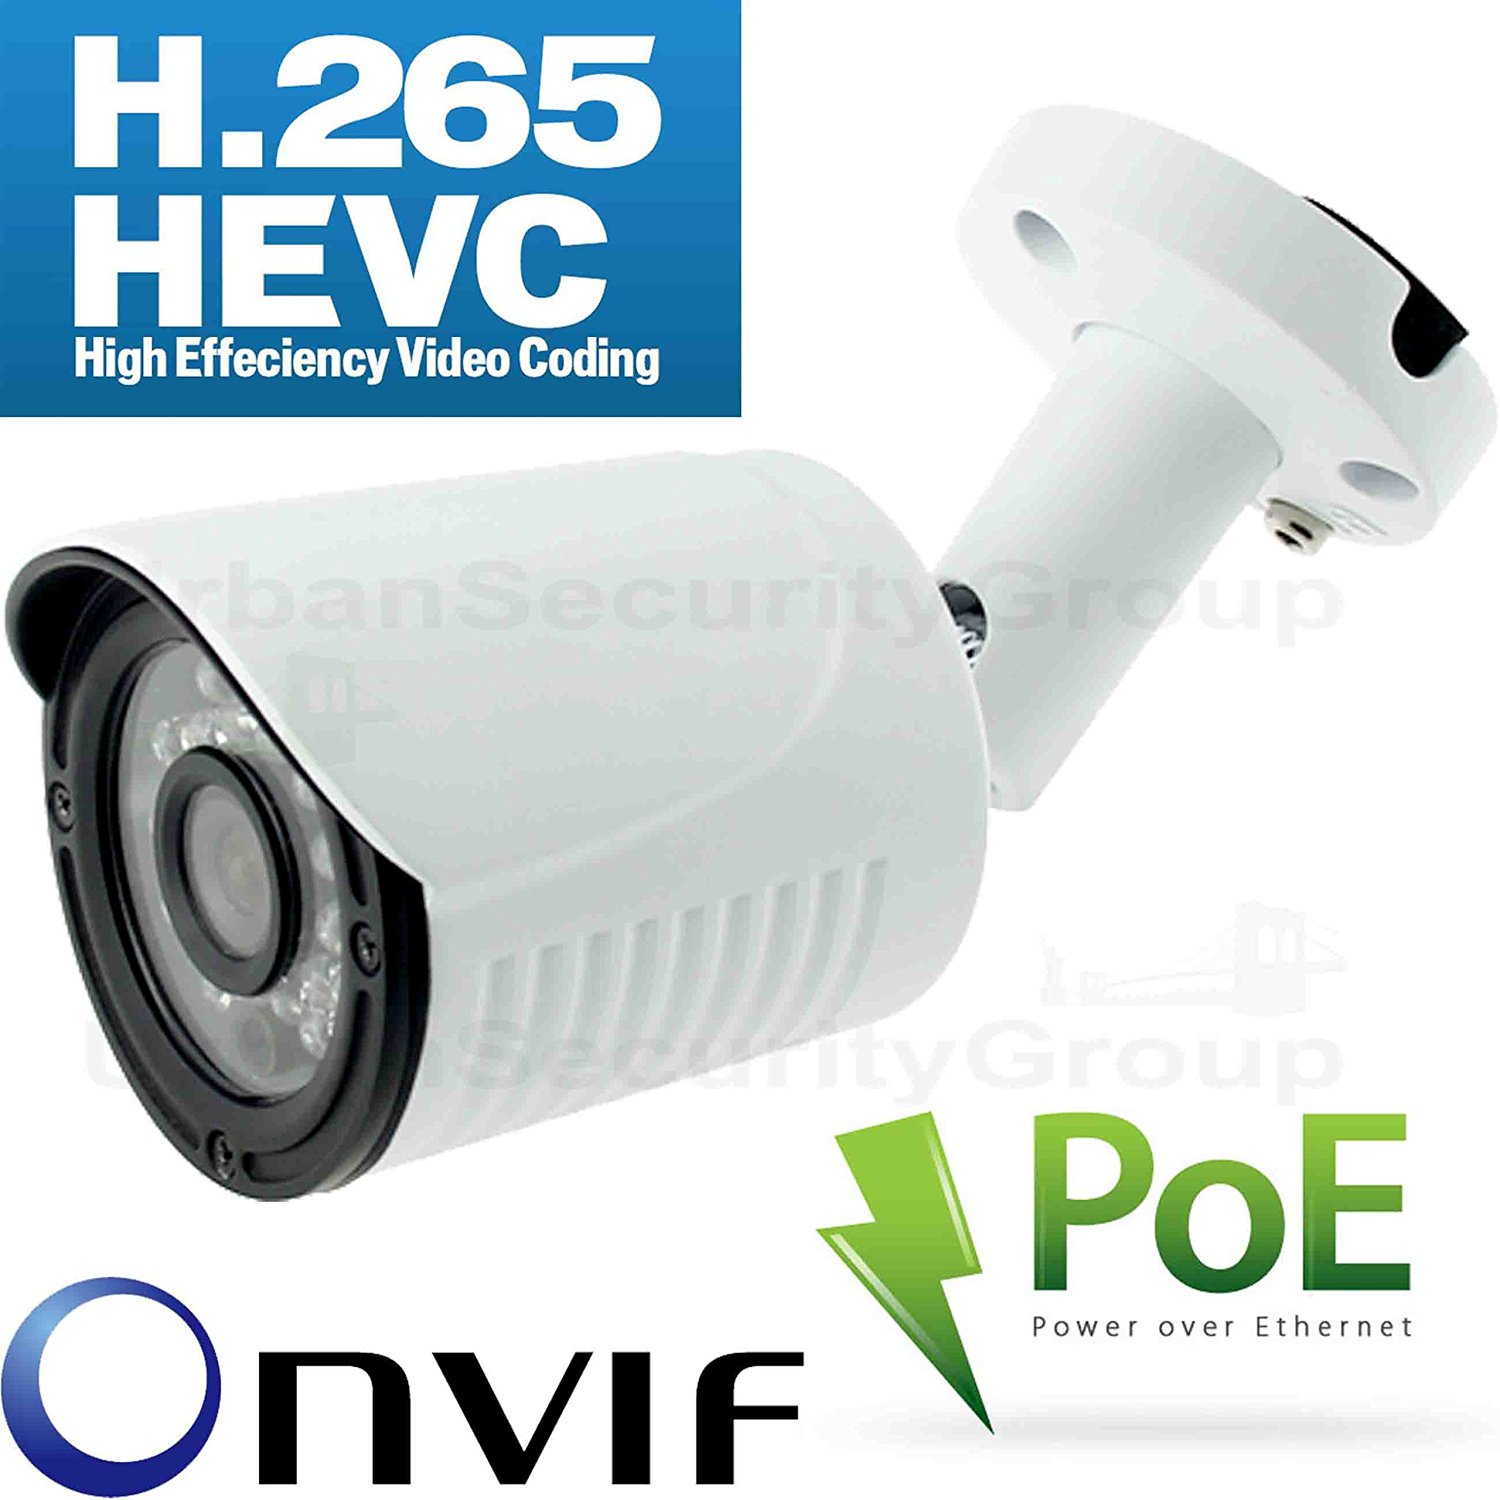 USG H.265 Sony DSP High Definition 2MP 1080P IP Network Bullet Camera * 1920x1080 @ 30FPS * 3.6mm Wide Angle 3MP Lens * ONVIF 2.4 * Motion Detection * Free Phone App + Alerts * Business Grade IP CCTV